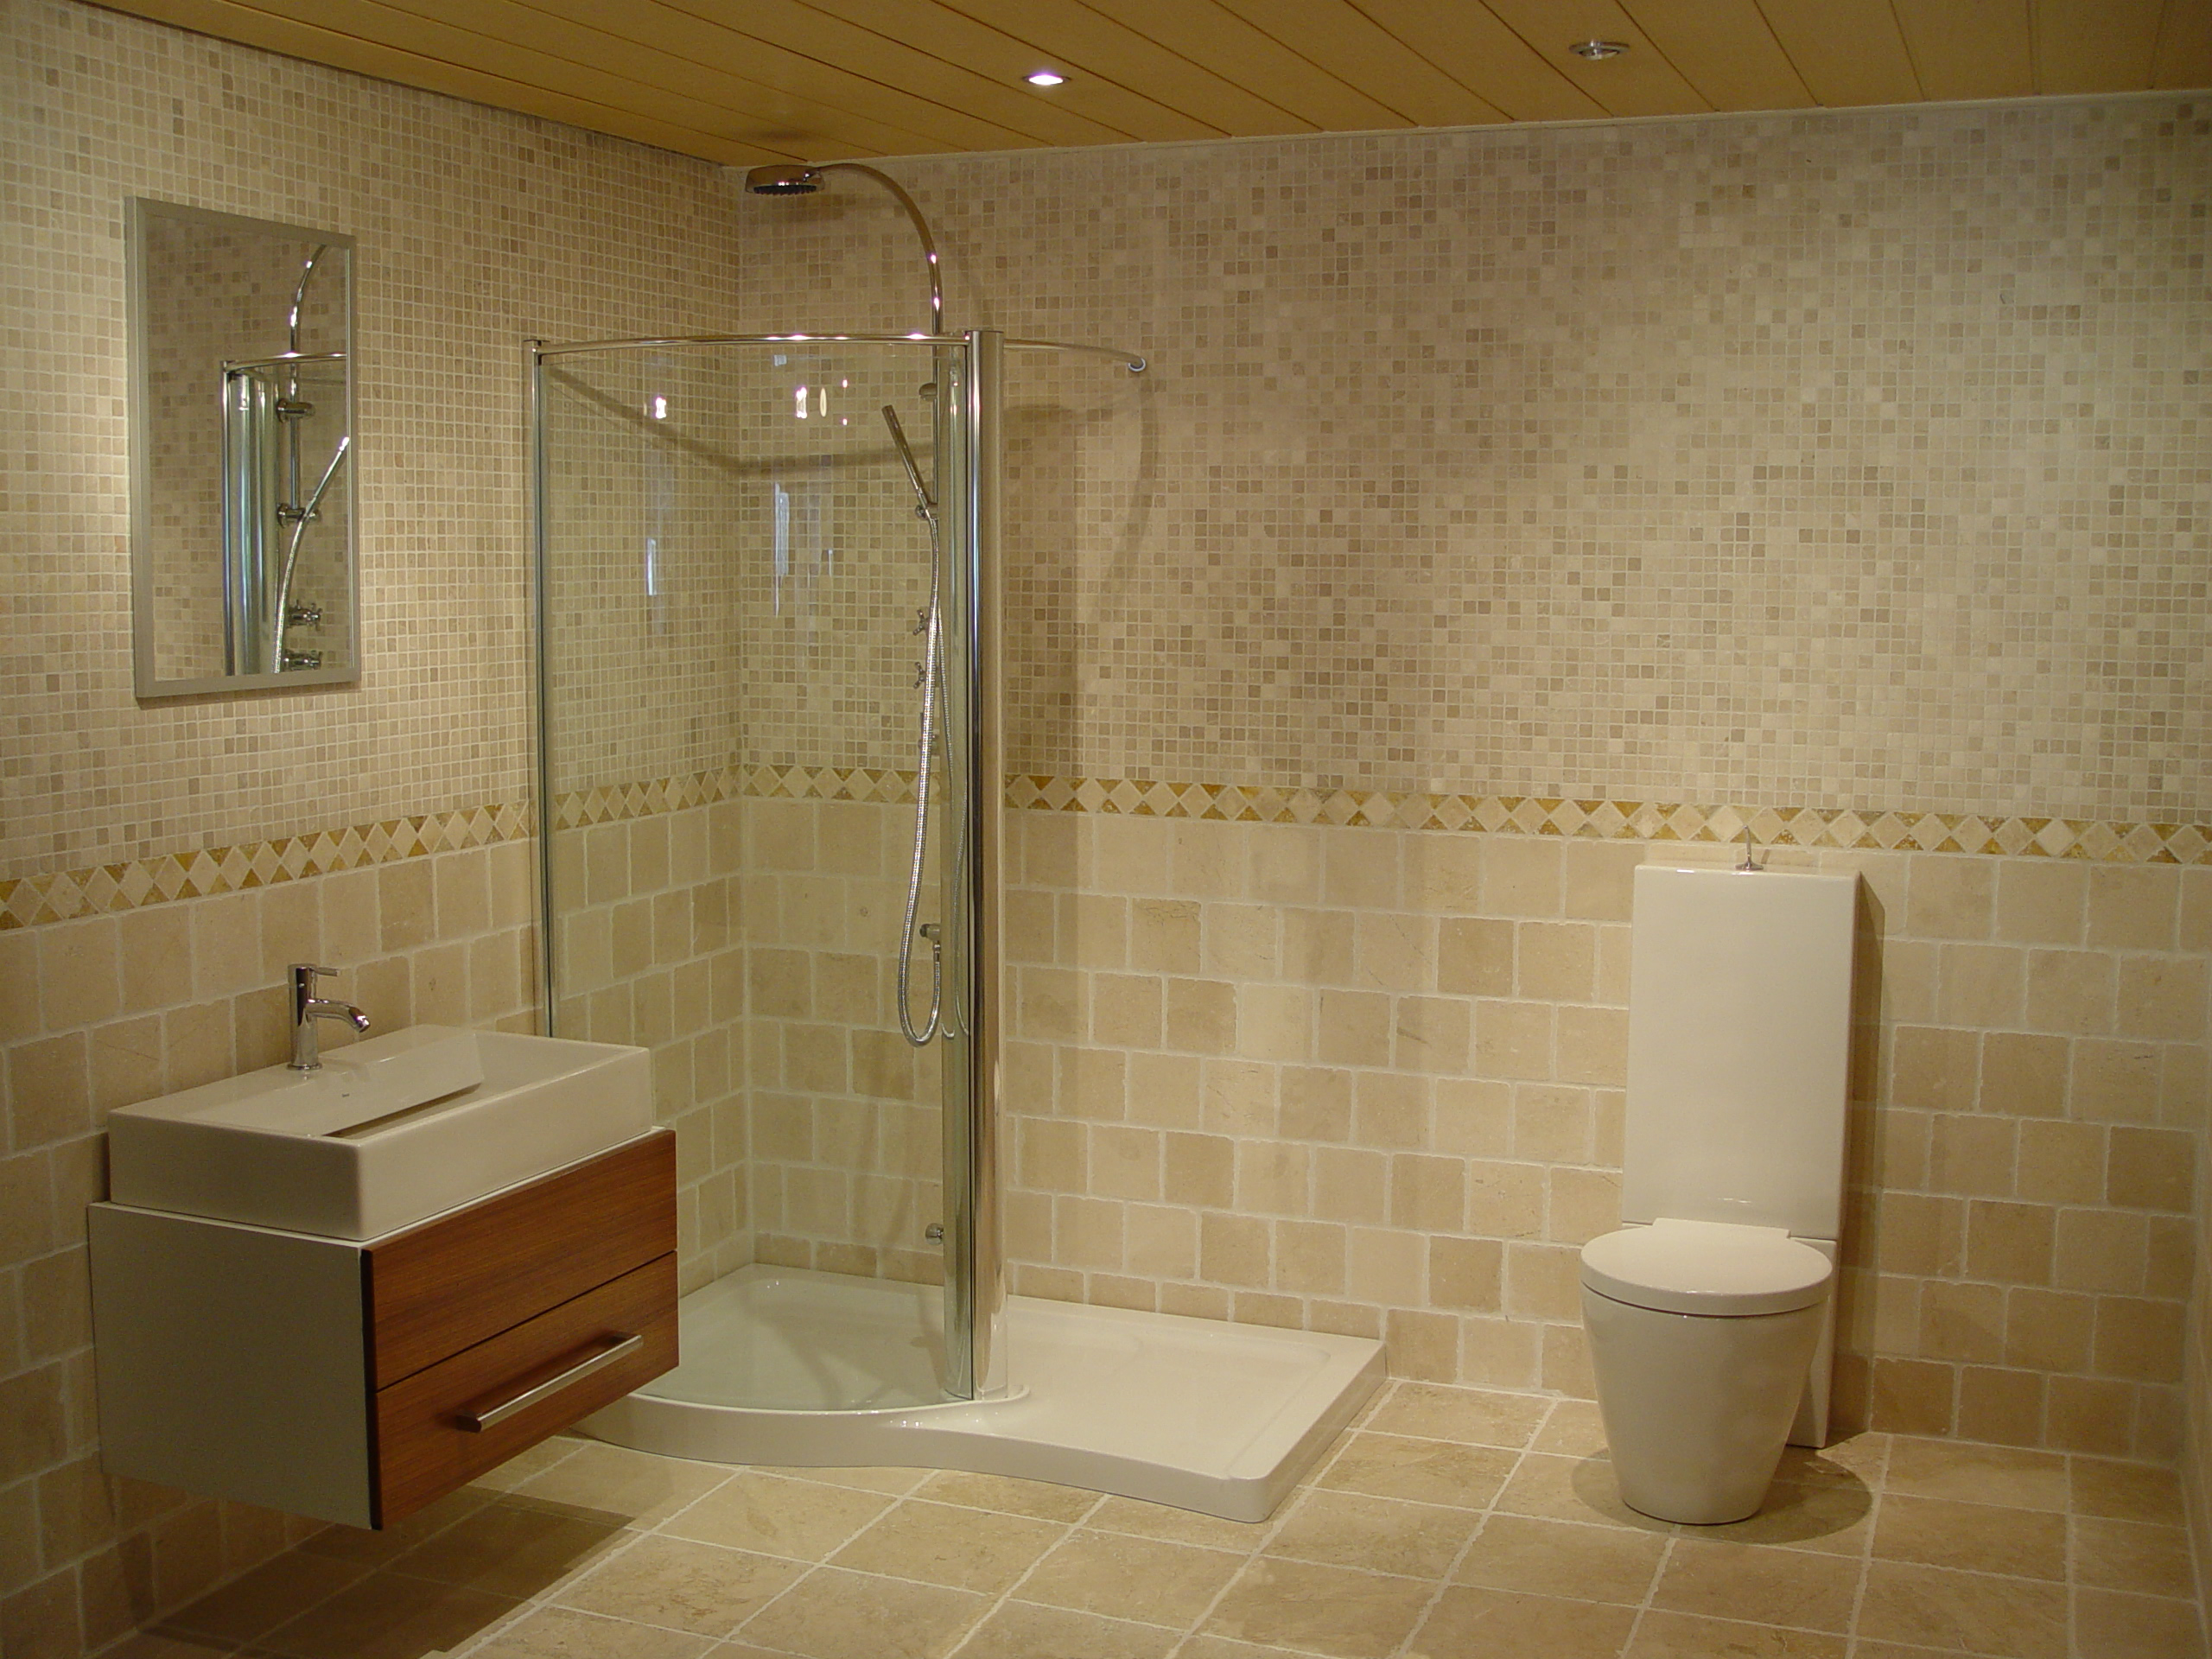 Ccacfc bathroom tile desi gb nuove linee bagno a manufacturer of bathroom furniture with